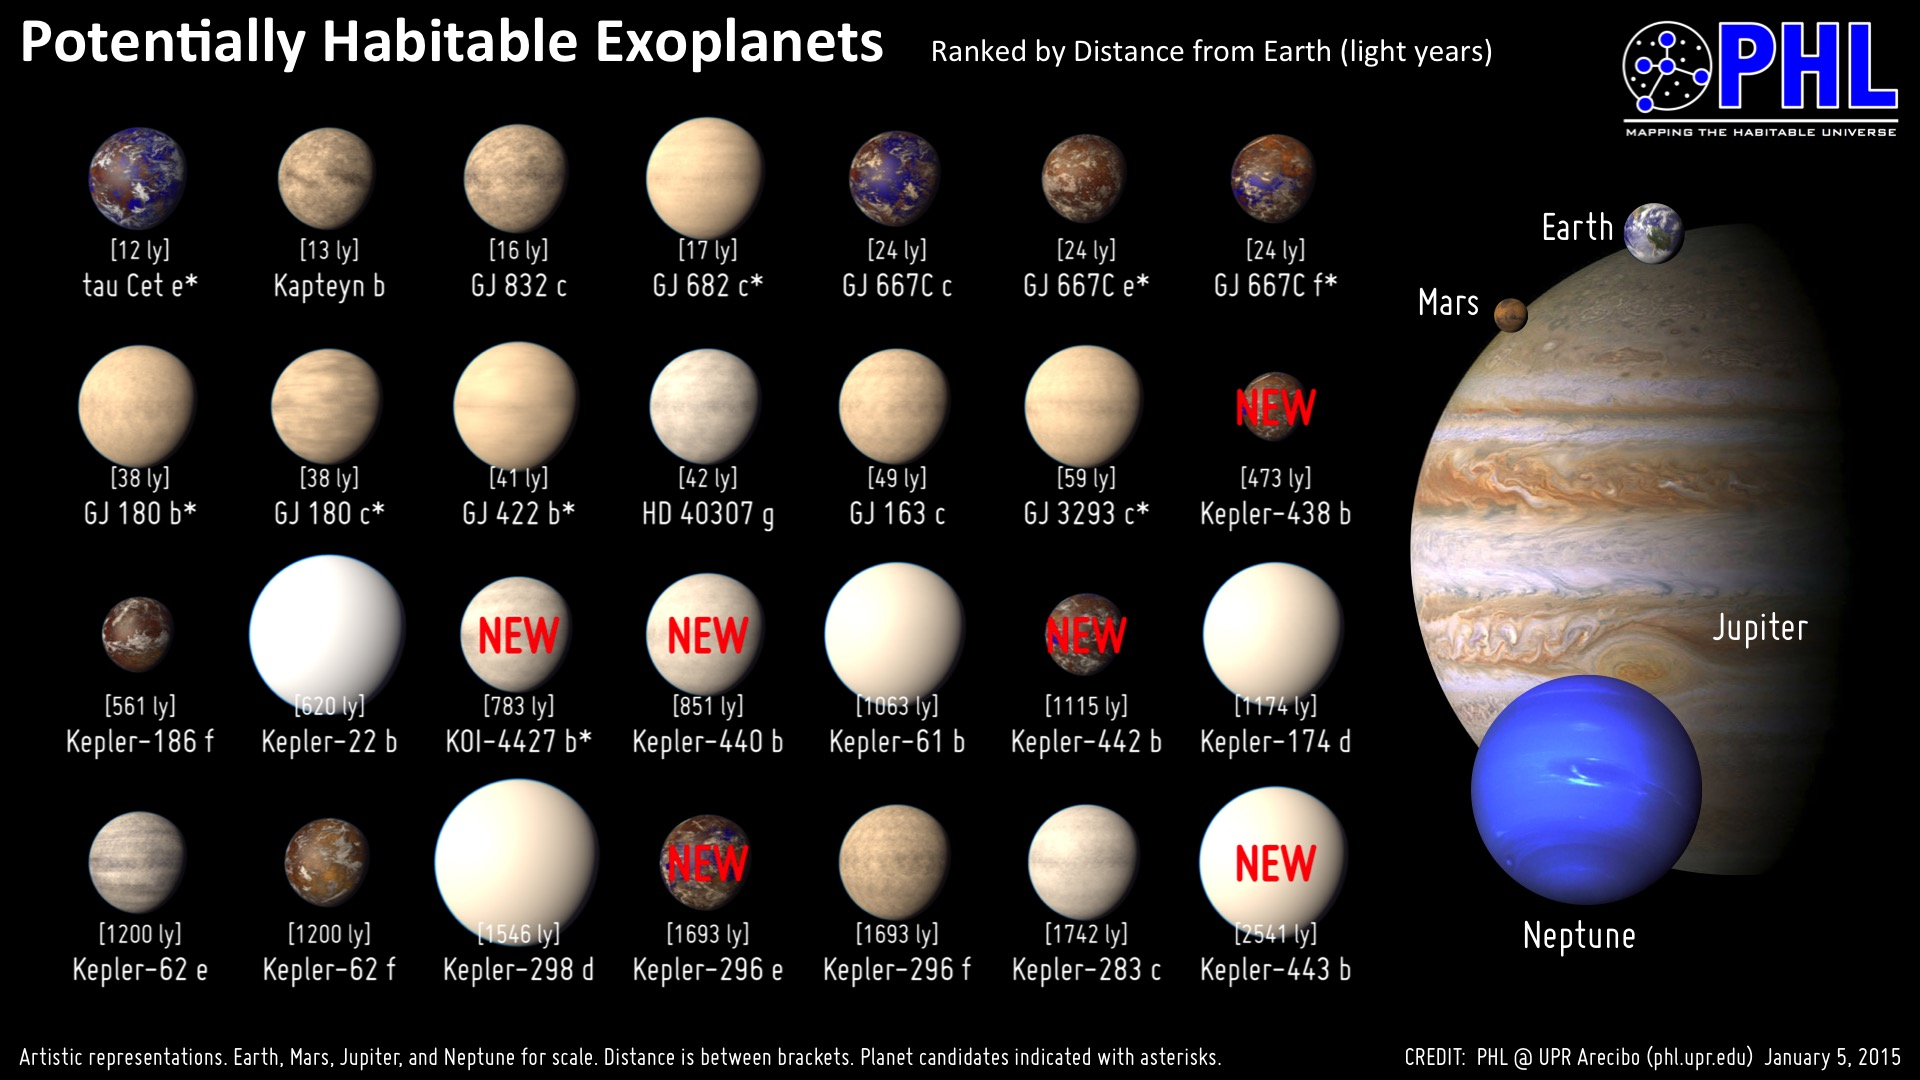 NASA DISCOVERS A NEW PLANET (HTIAF31) 2012 MAYAN CALENDAR ...   New Planet Discovery 2012